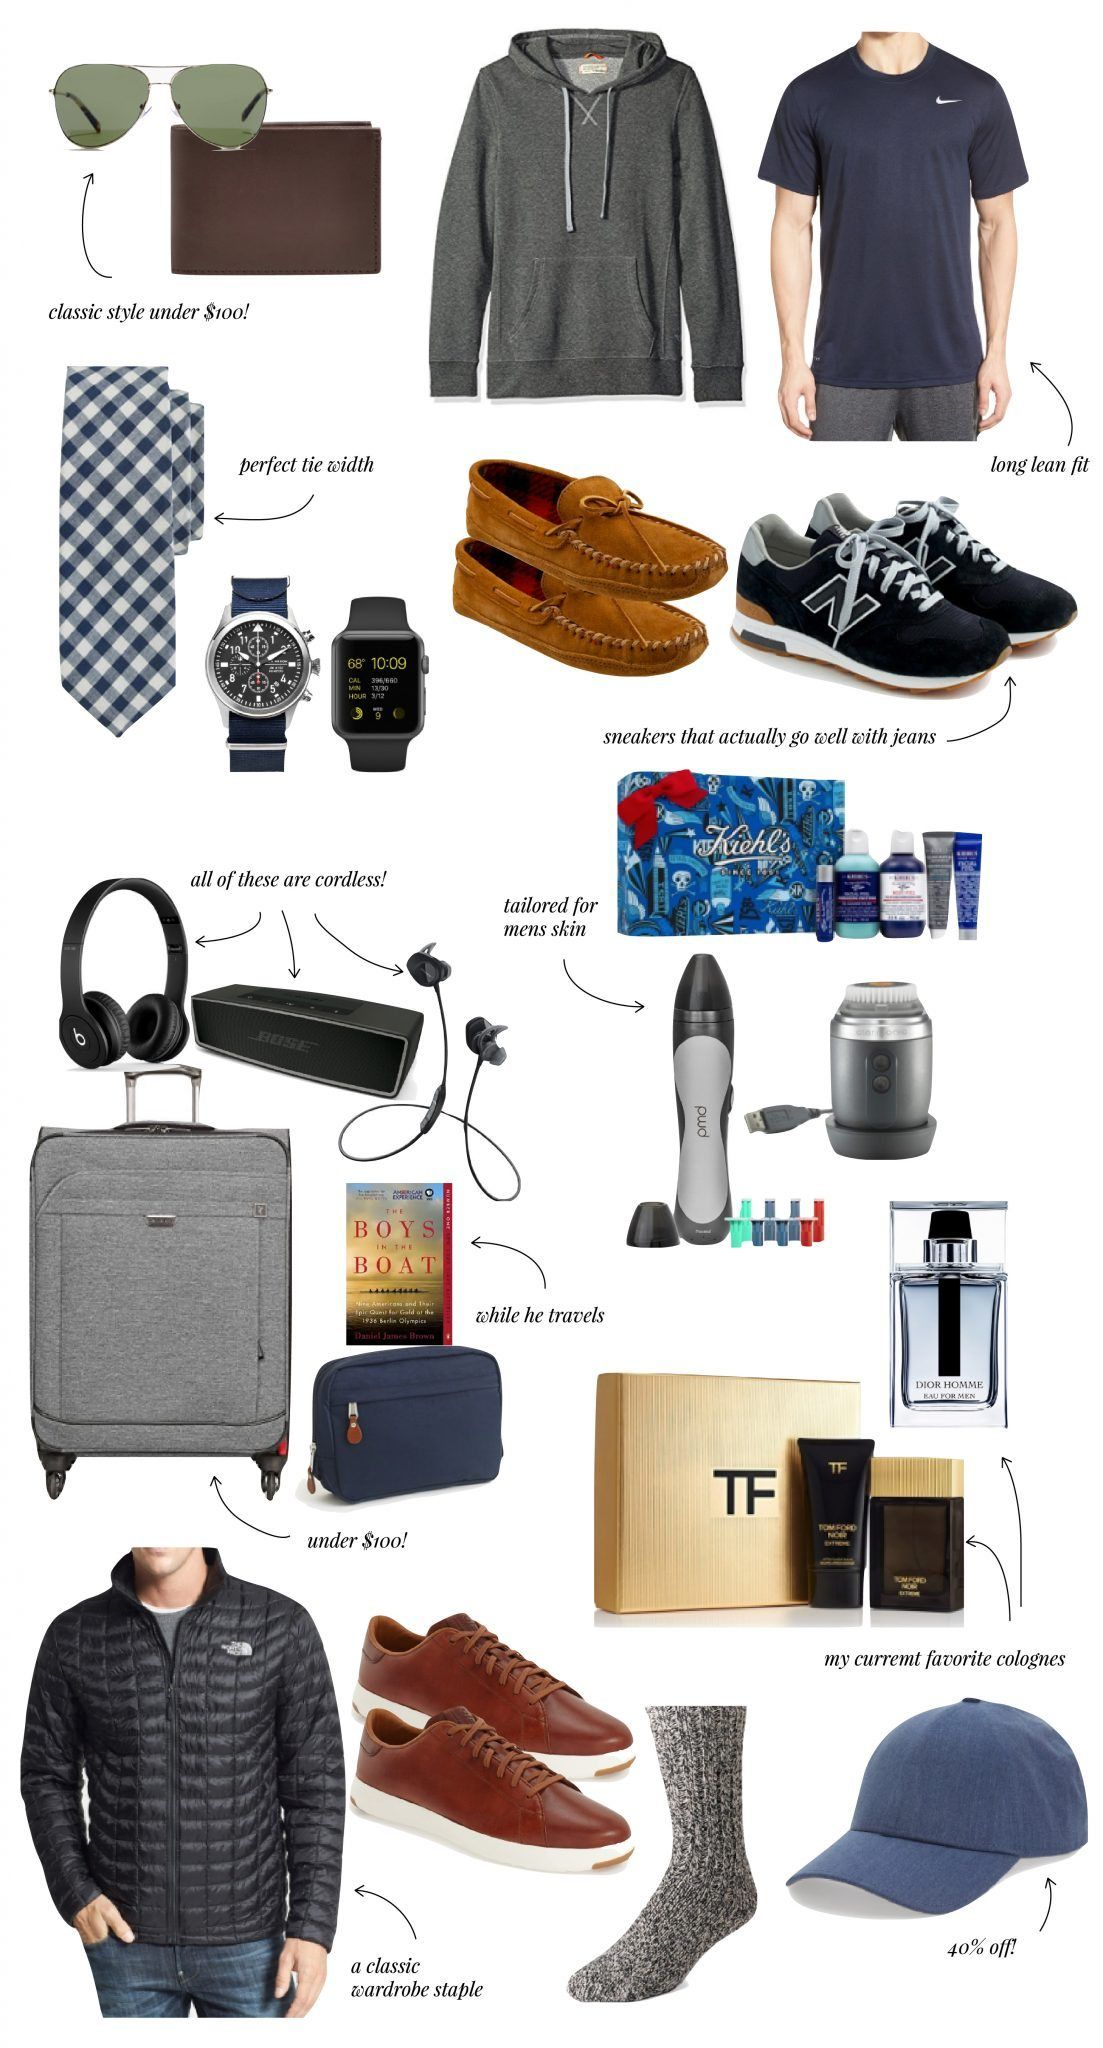 Guide gift classic gift guide